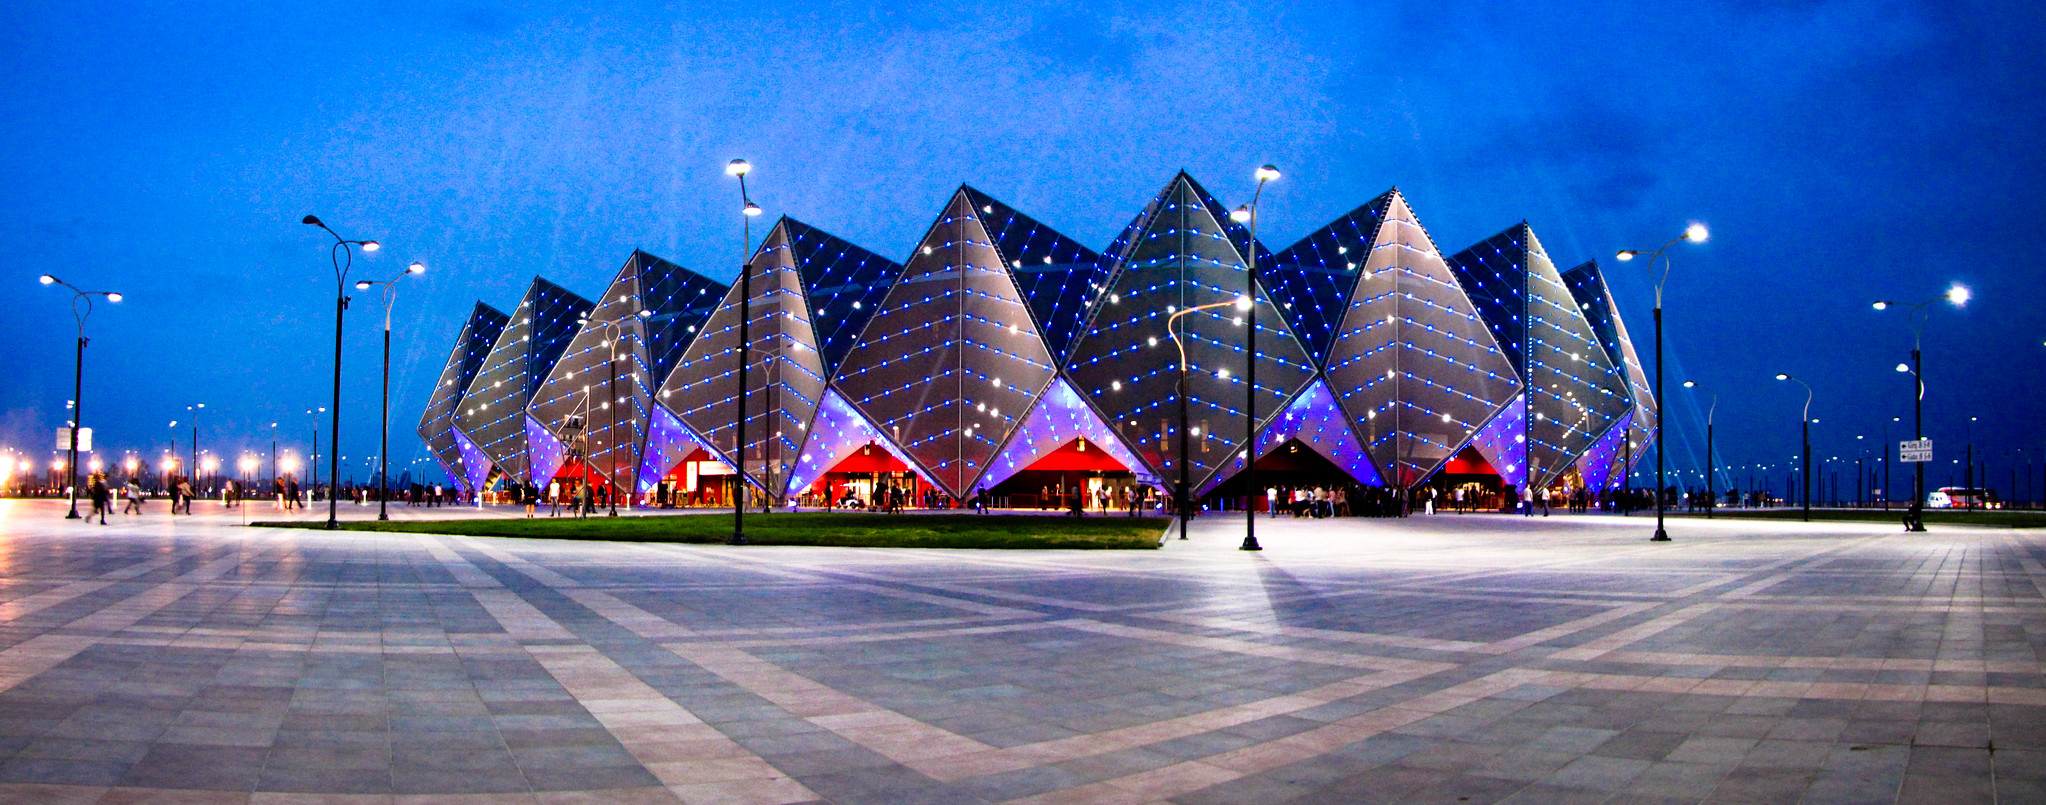 Crystal Hall at night